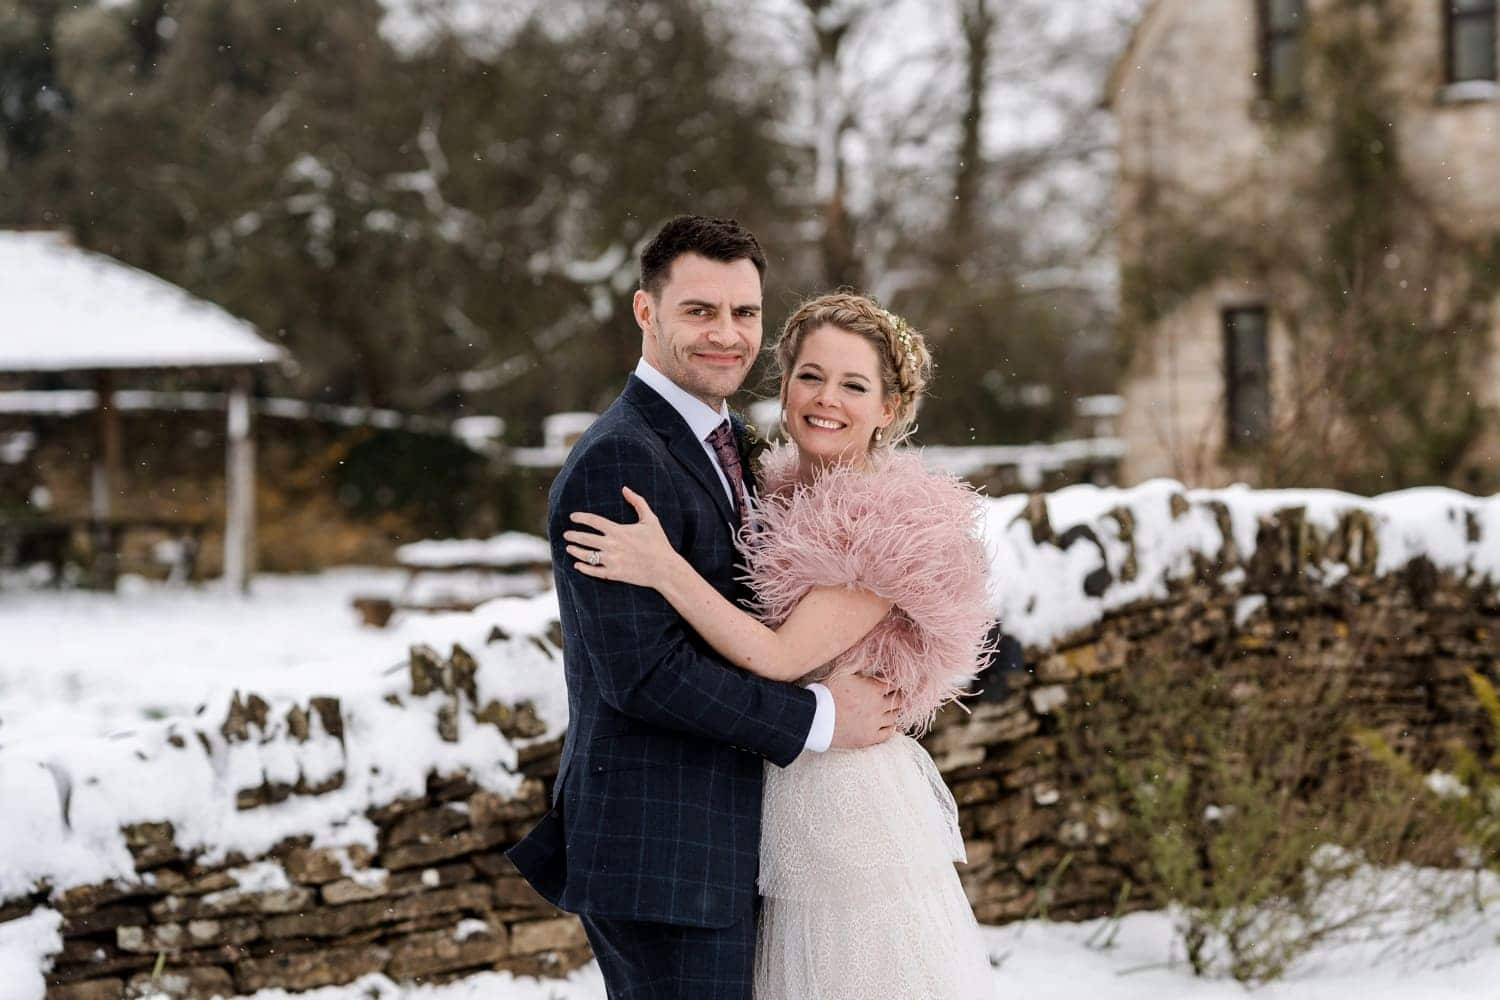 Wedding portraits in the snow at Great Tythe Barn